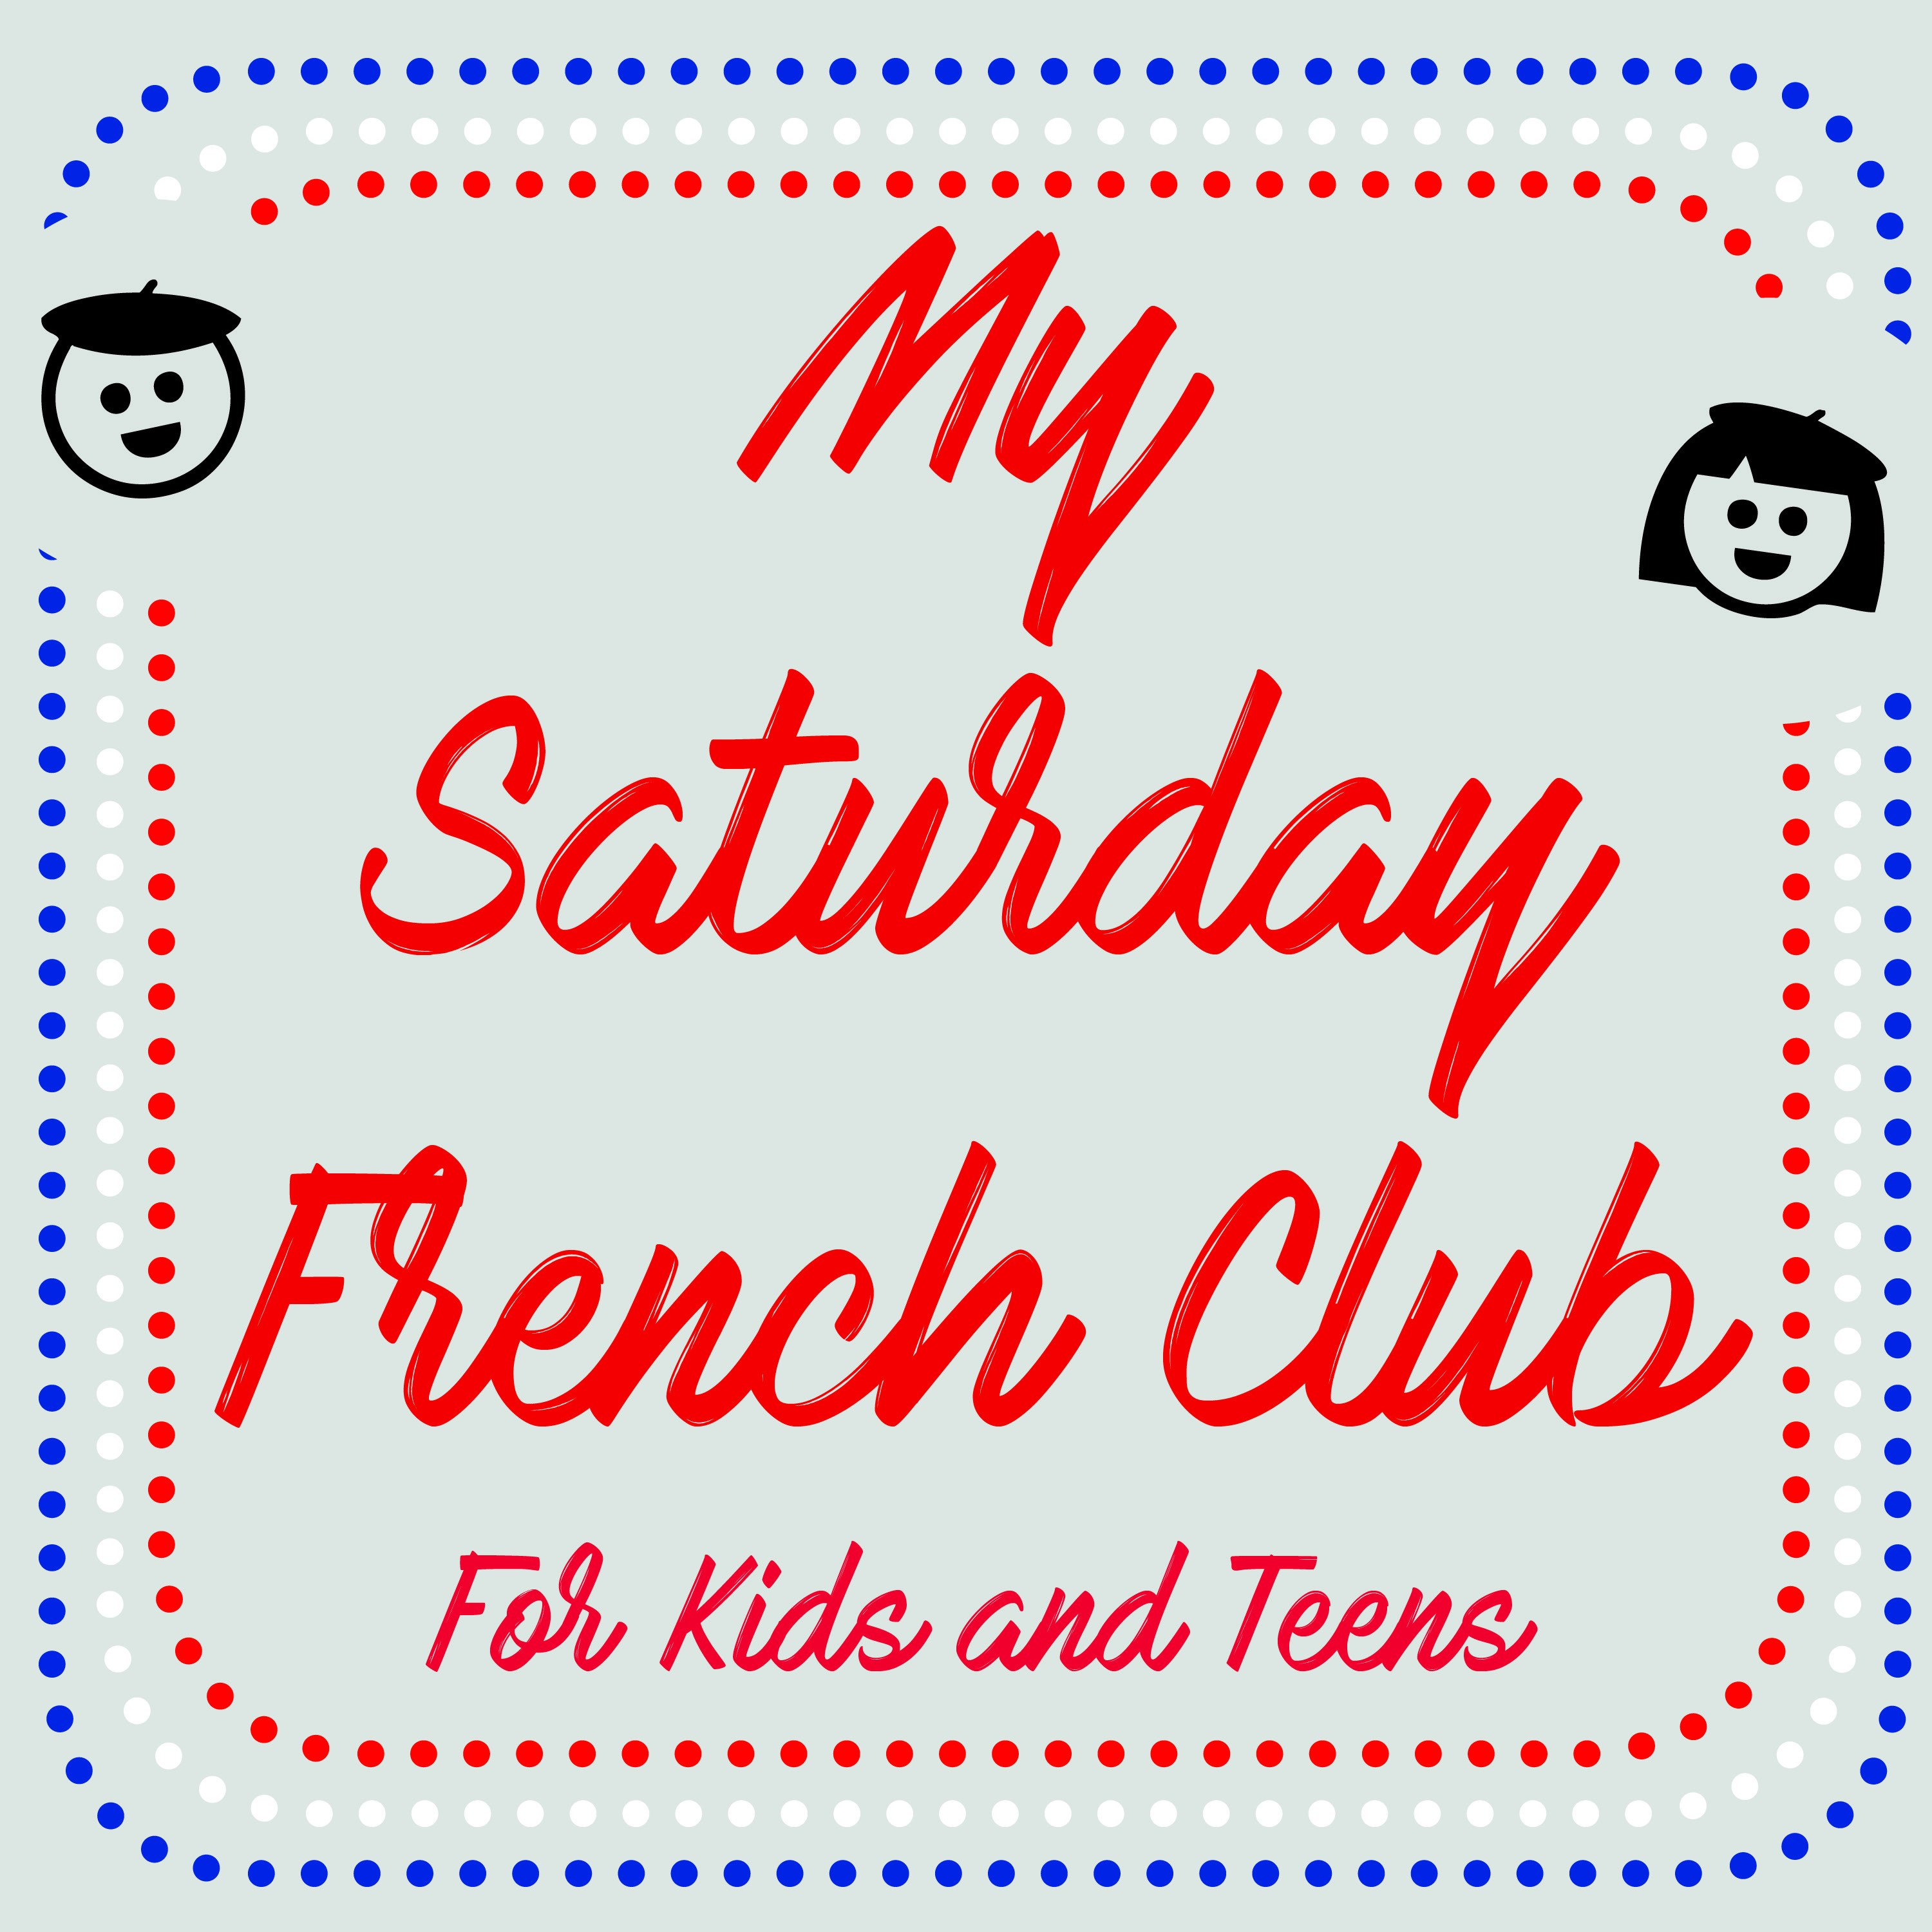 My Saturday French Club - Term 4